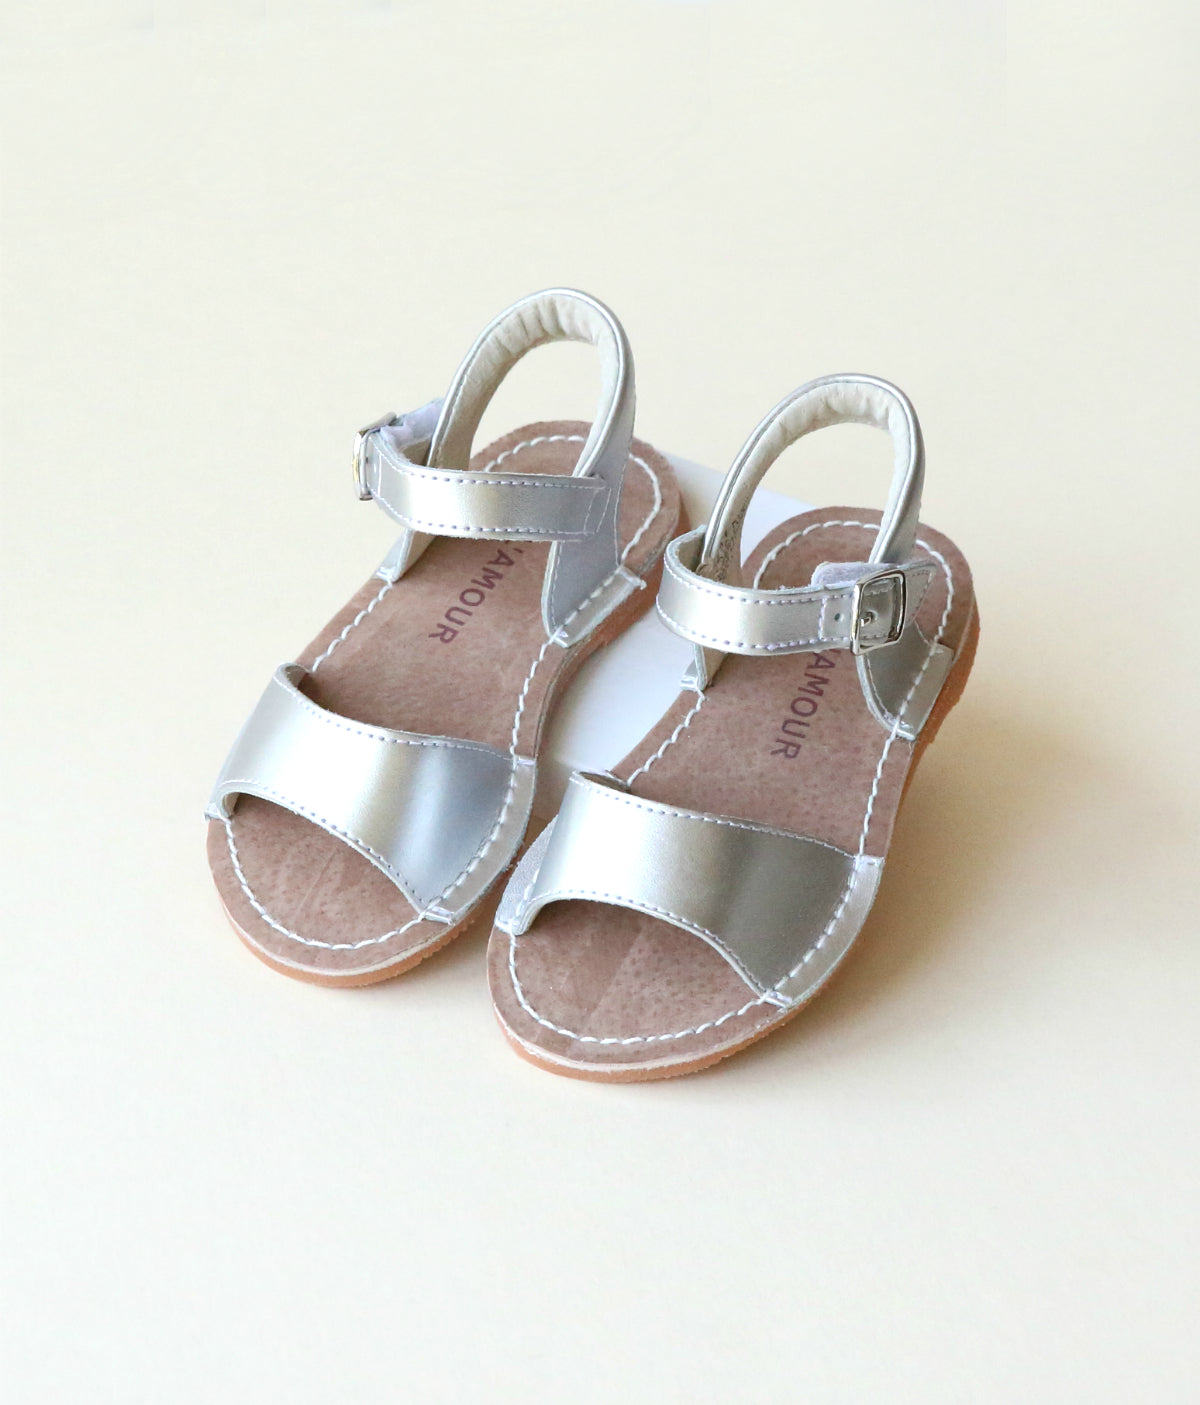 6548e6151bd Welcome to L Amour Shoes